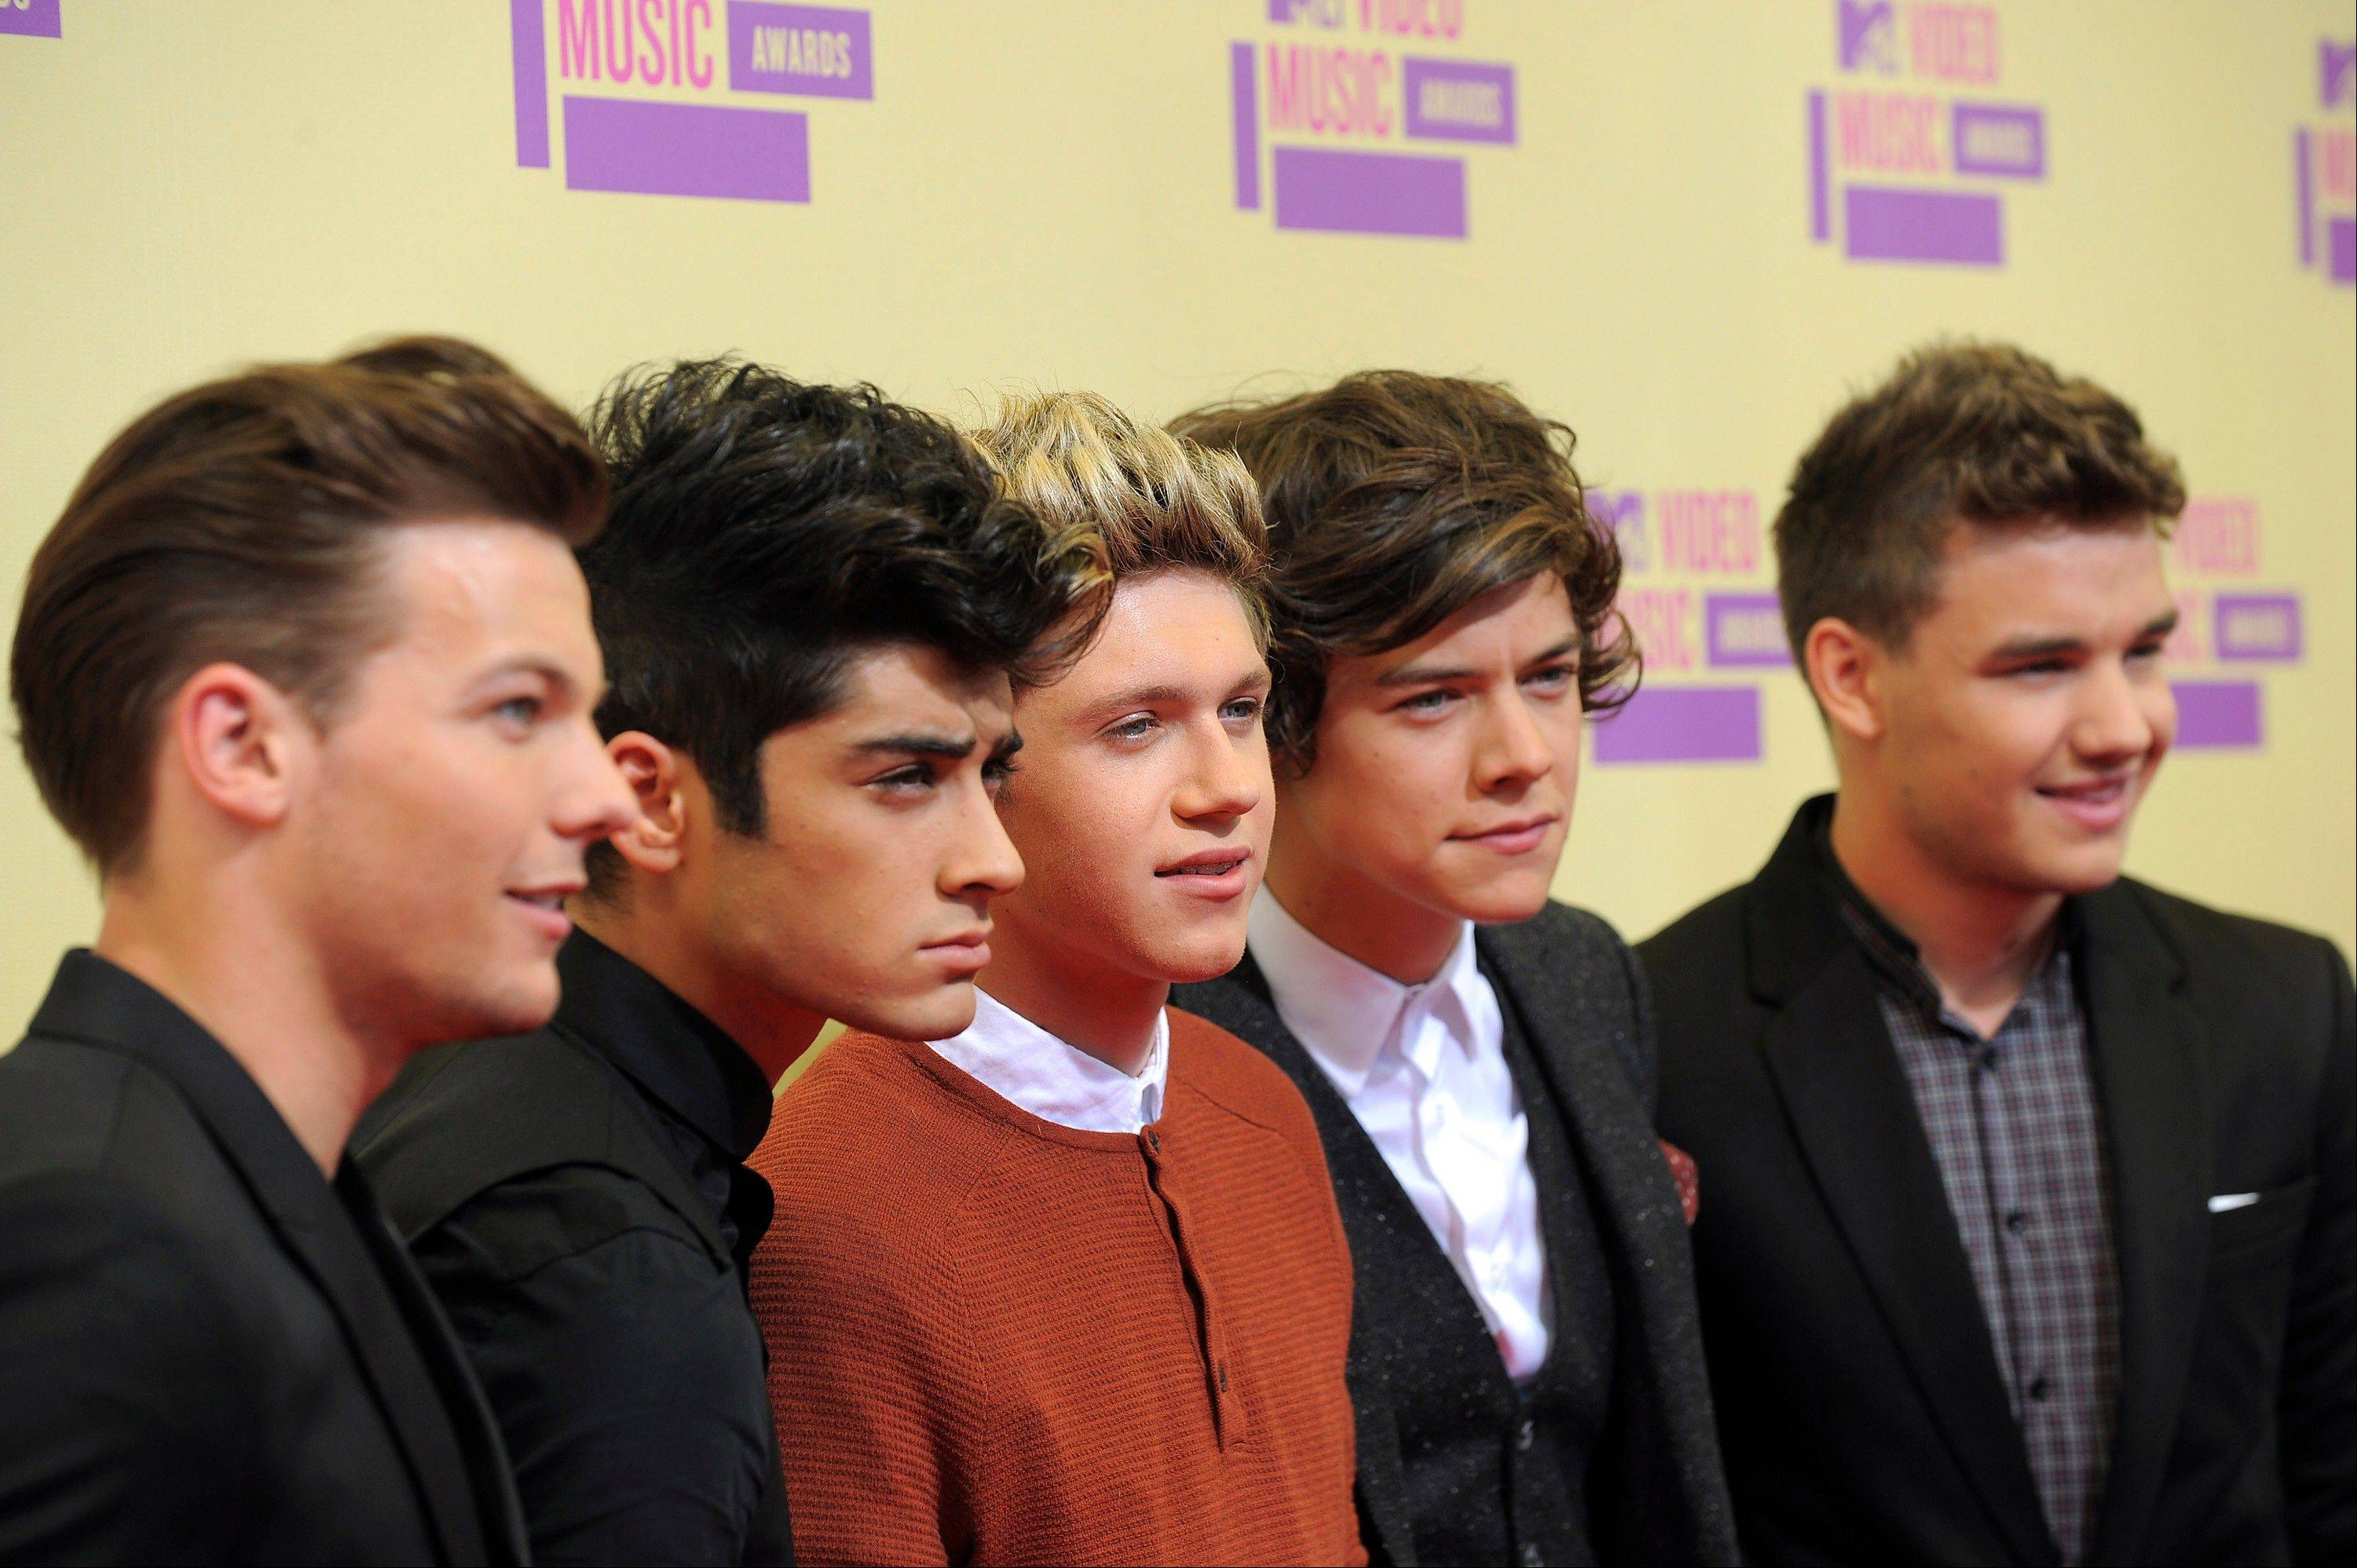 Members of the British band One Direction, from left, Louis Tomlinson, Zayn Malik, Niall Horan, Harry Styles and Liam Payne arrive at the MTV Video Music Awards on Thursday, Sept. 6, 2012, in Los Angeles.